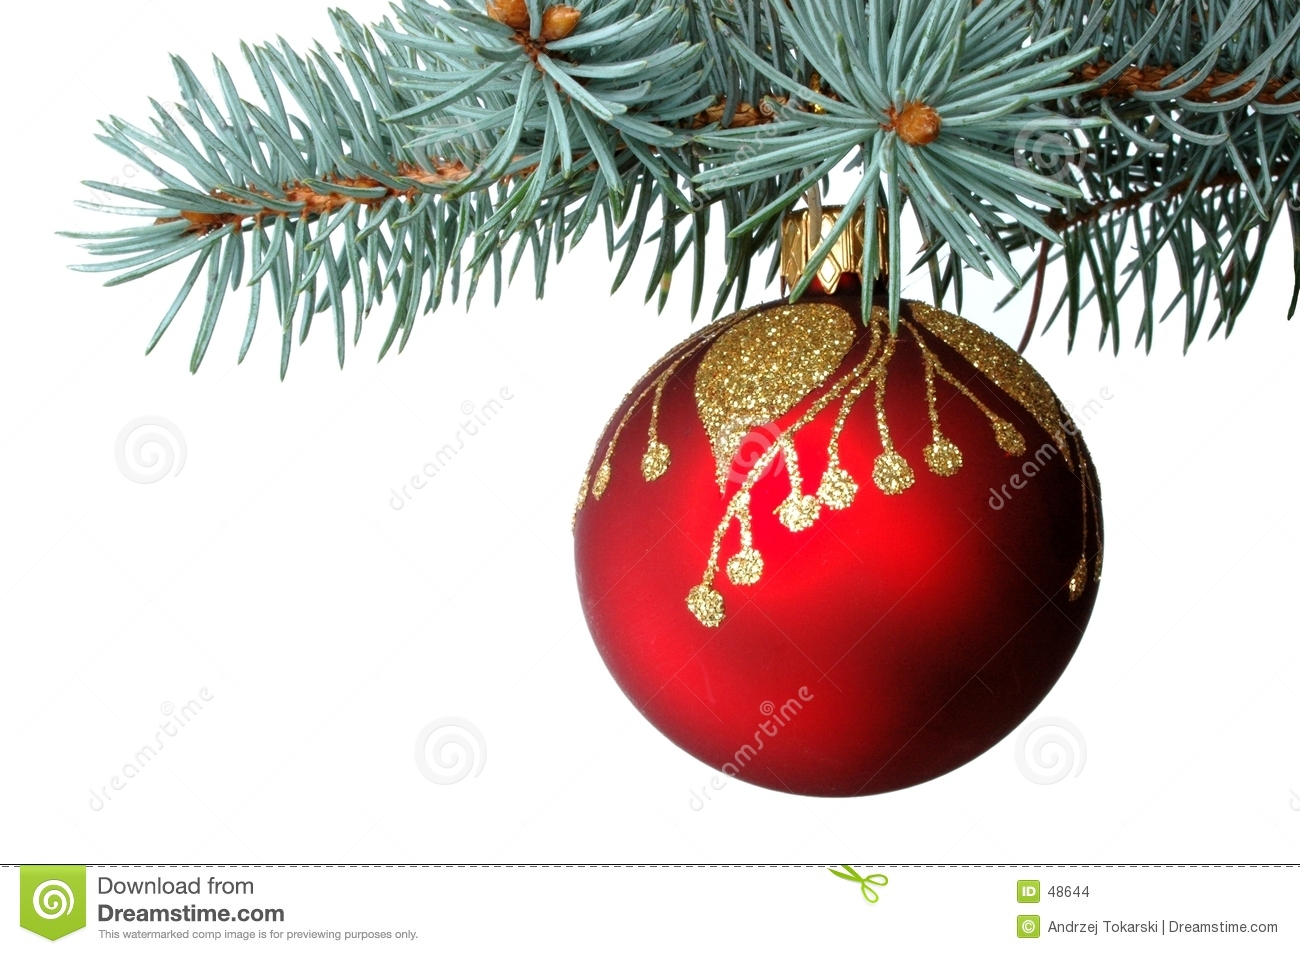 Imagine Decoration Christmas Decoration Stock Photo Image Of December Ball